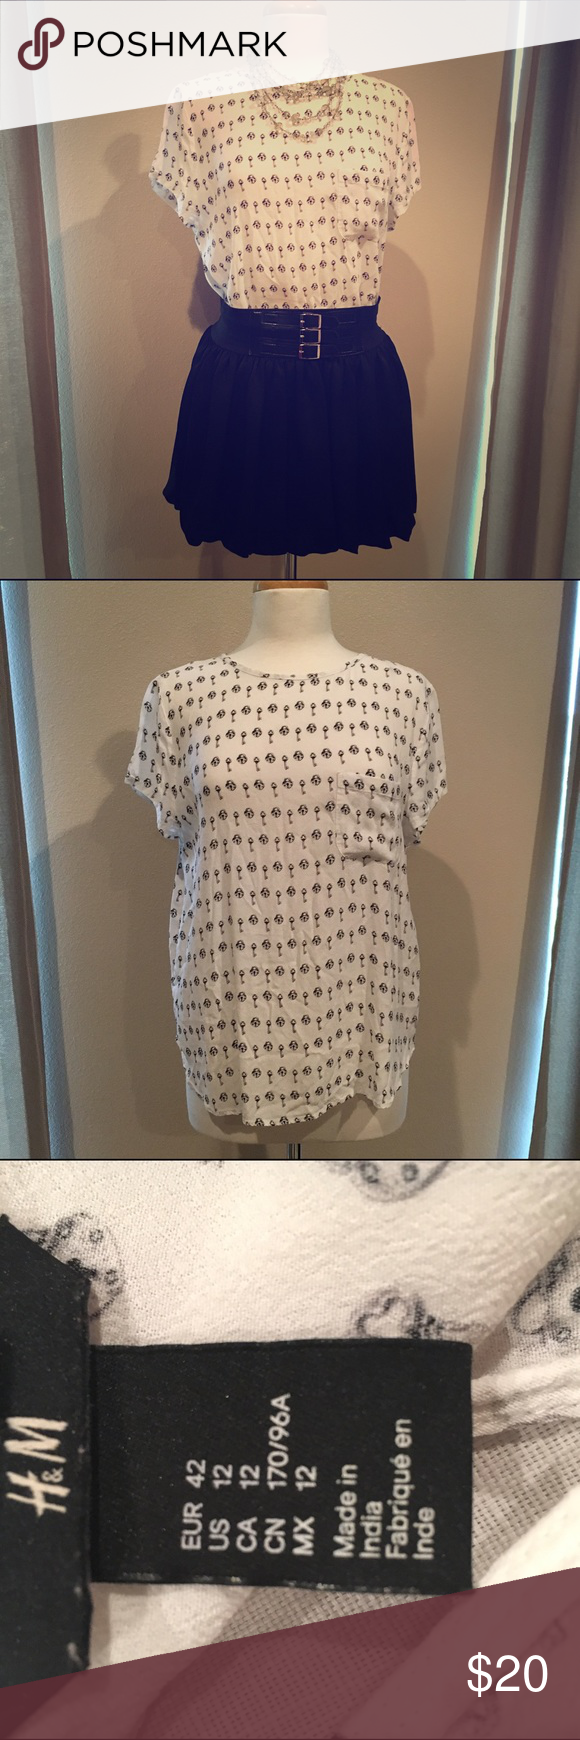 H&M Blouse White top with heart lock and key pattern. Size 12. Great condition. H&M Tops Blouses